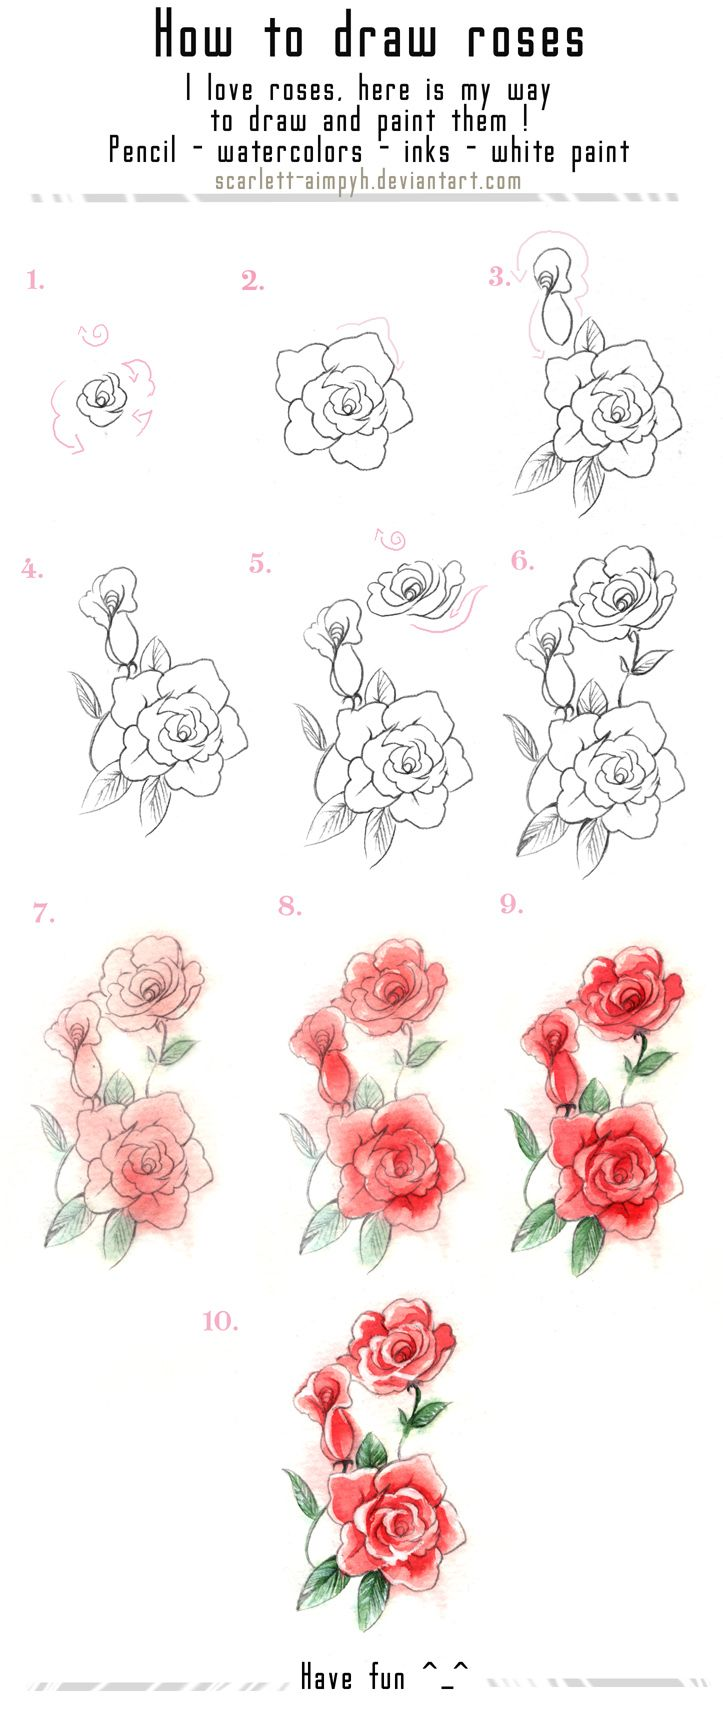 122 - Draw and paint roses by Scarlett-Aimpyh.deviantart.com on @deviantART